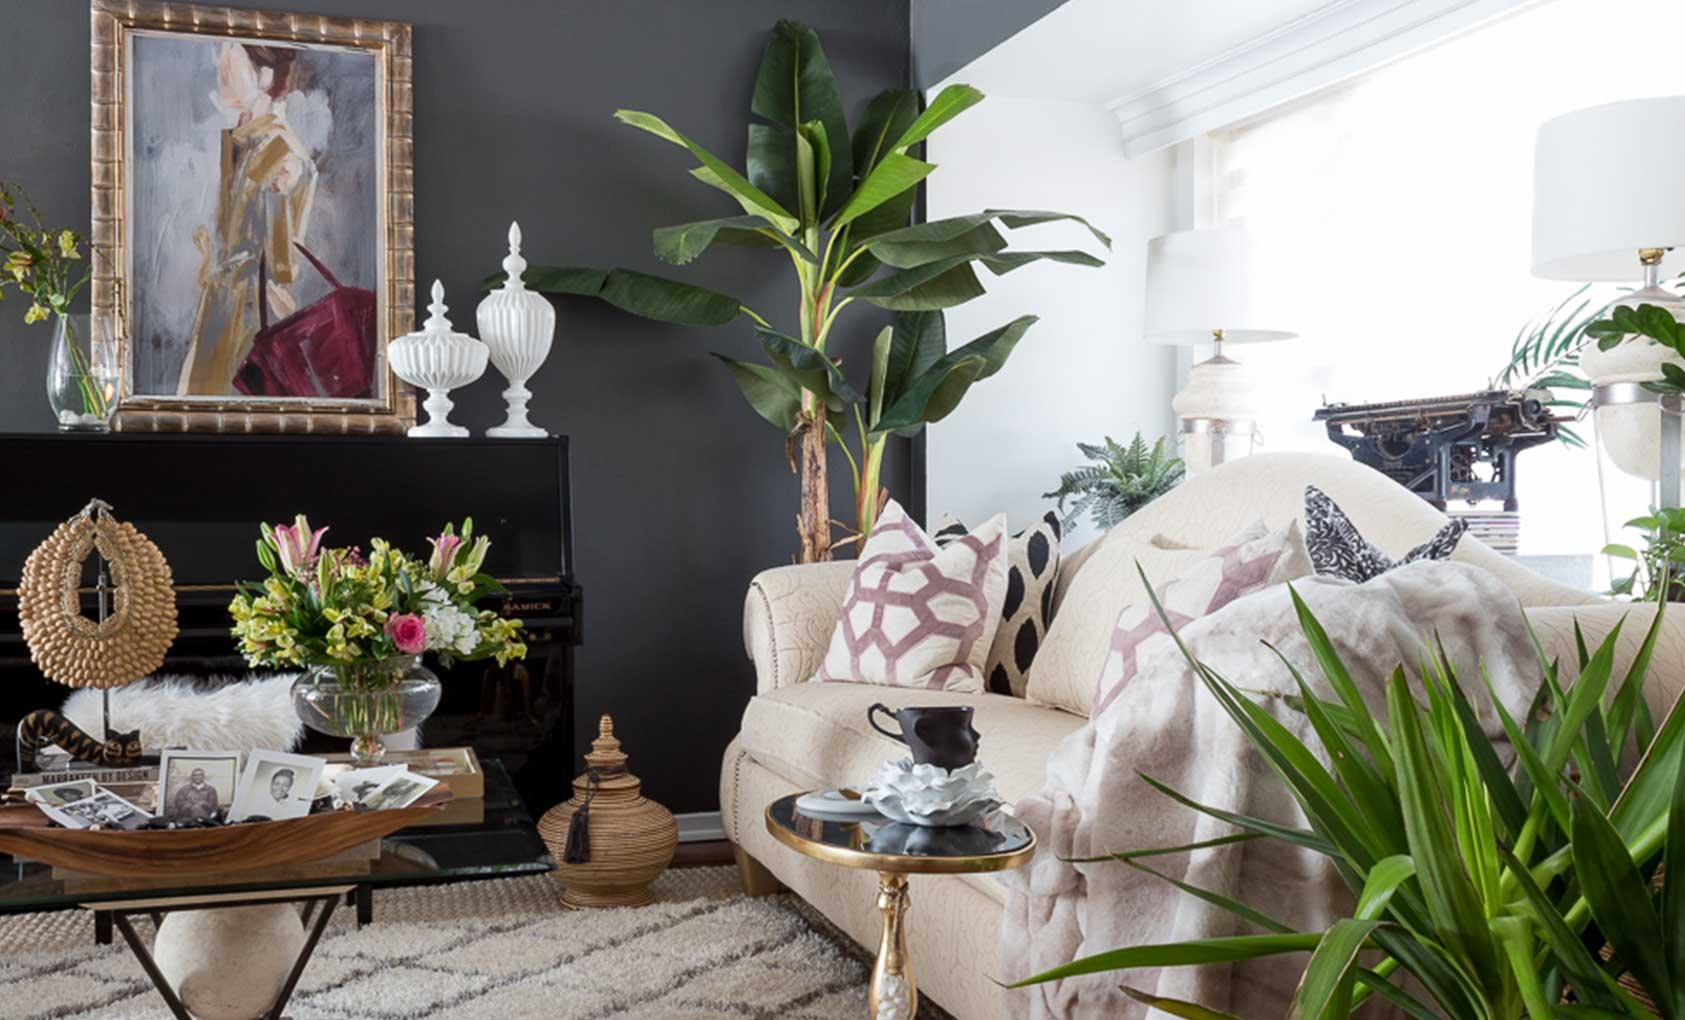 Before & After: A Tribute to Family, Design*Sponge